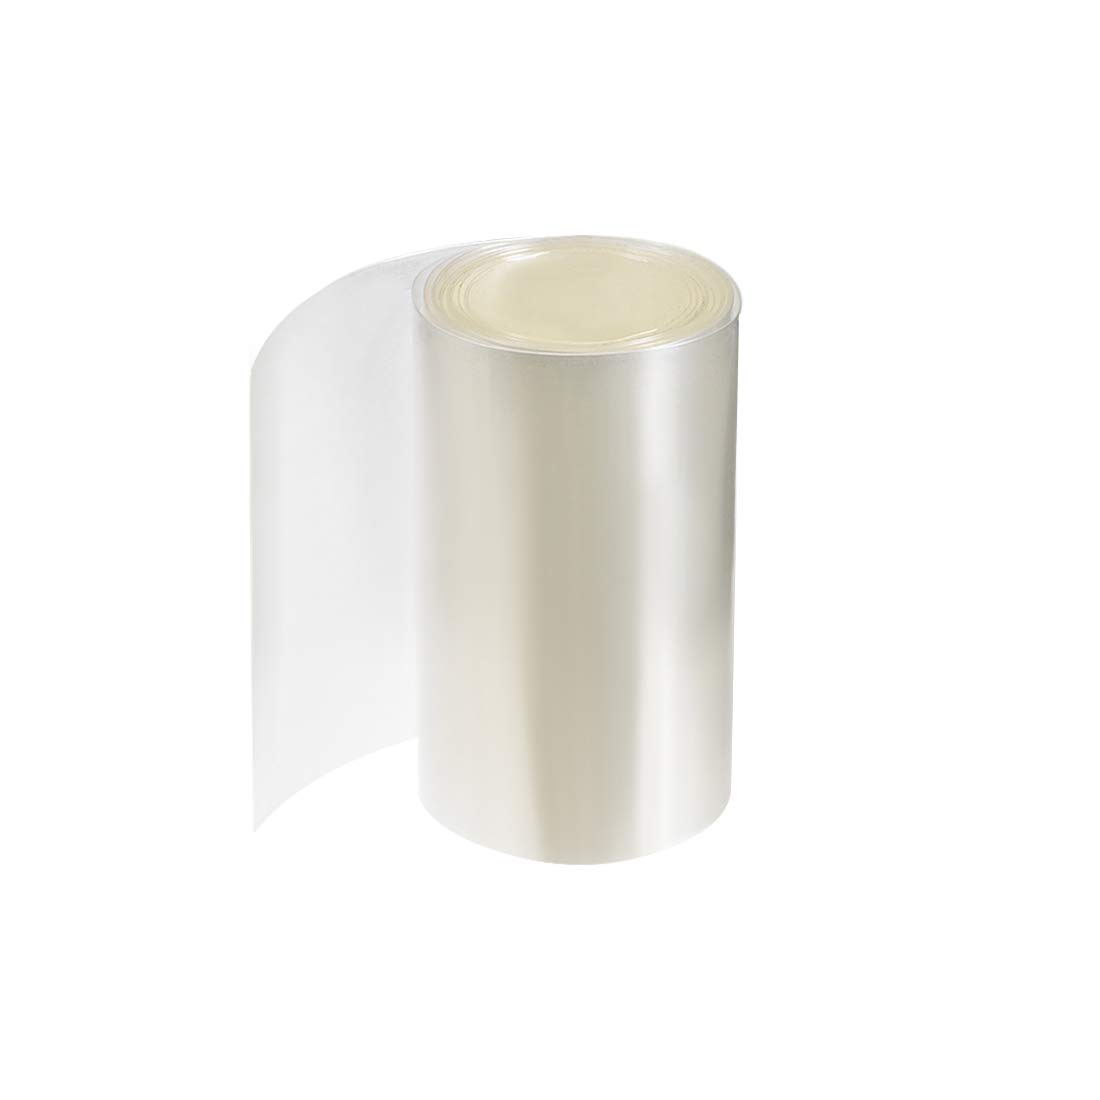 uxcell Cheap PVC Heat Shrink Tube 95mm Layer New Shipping Free Dual Wrap for Flat Width